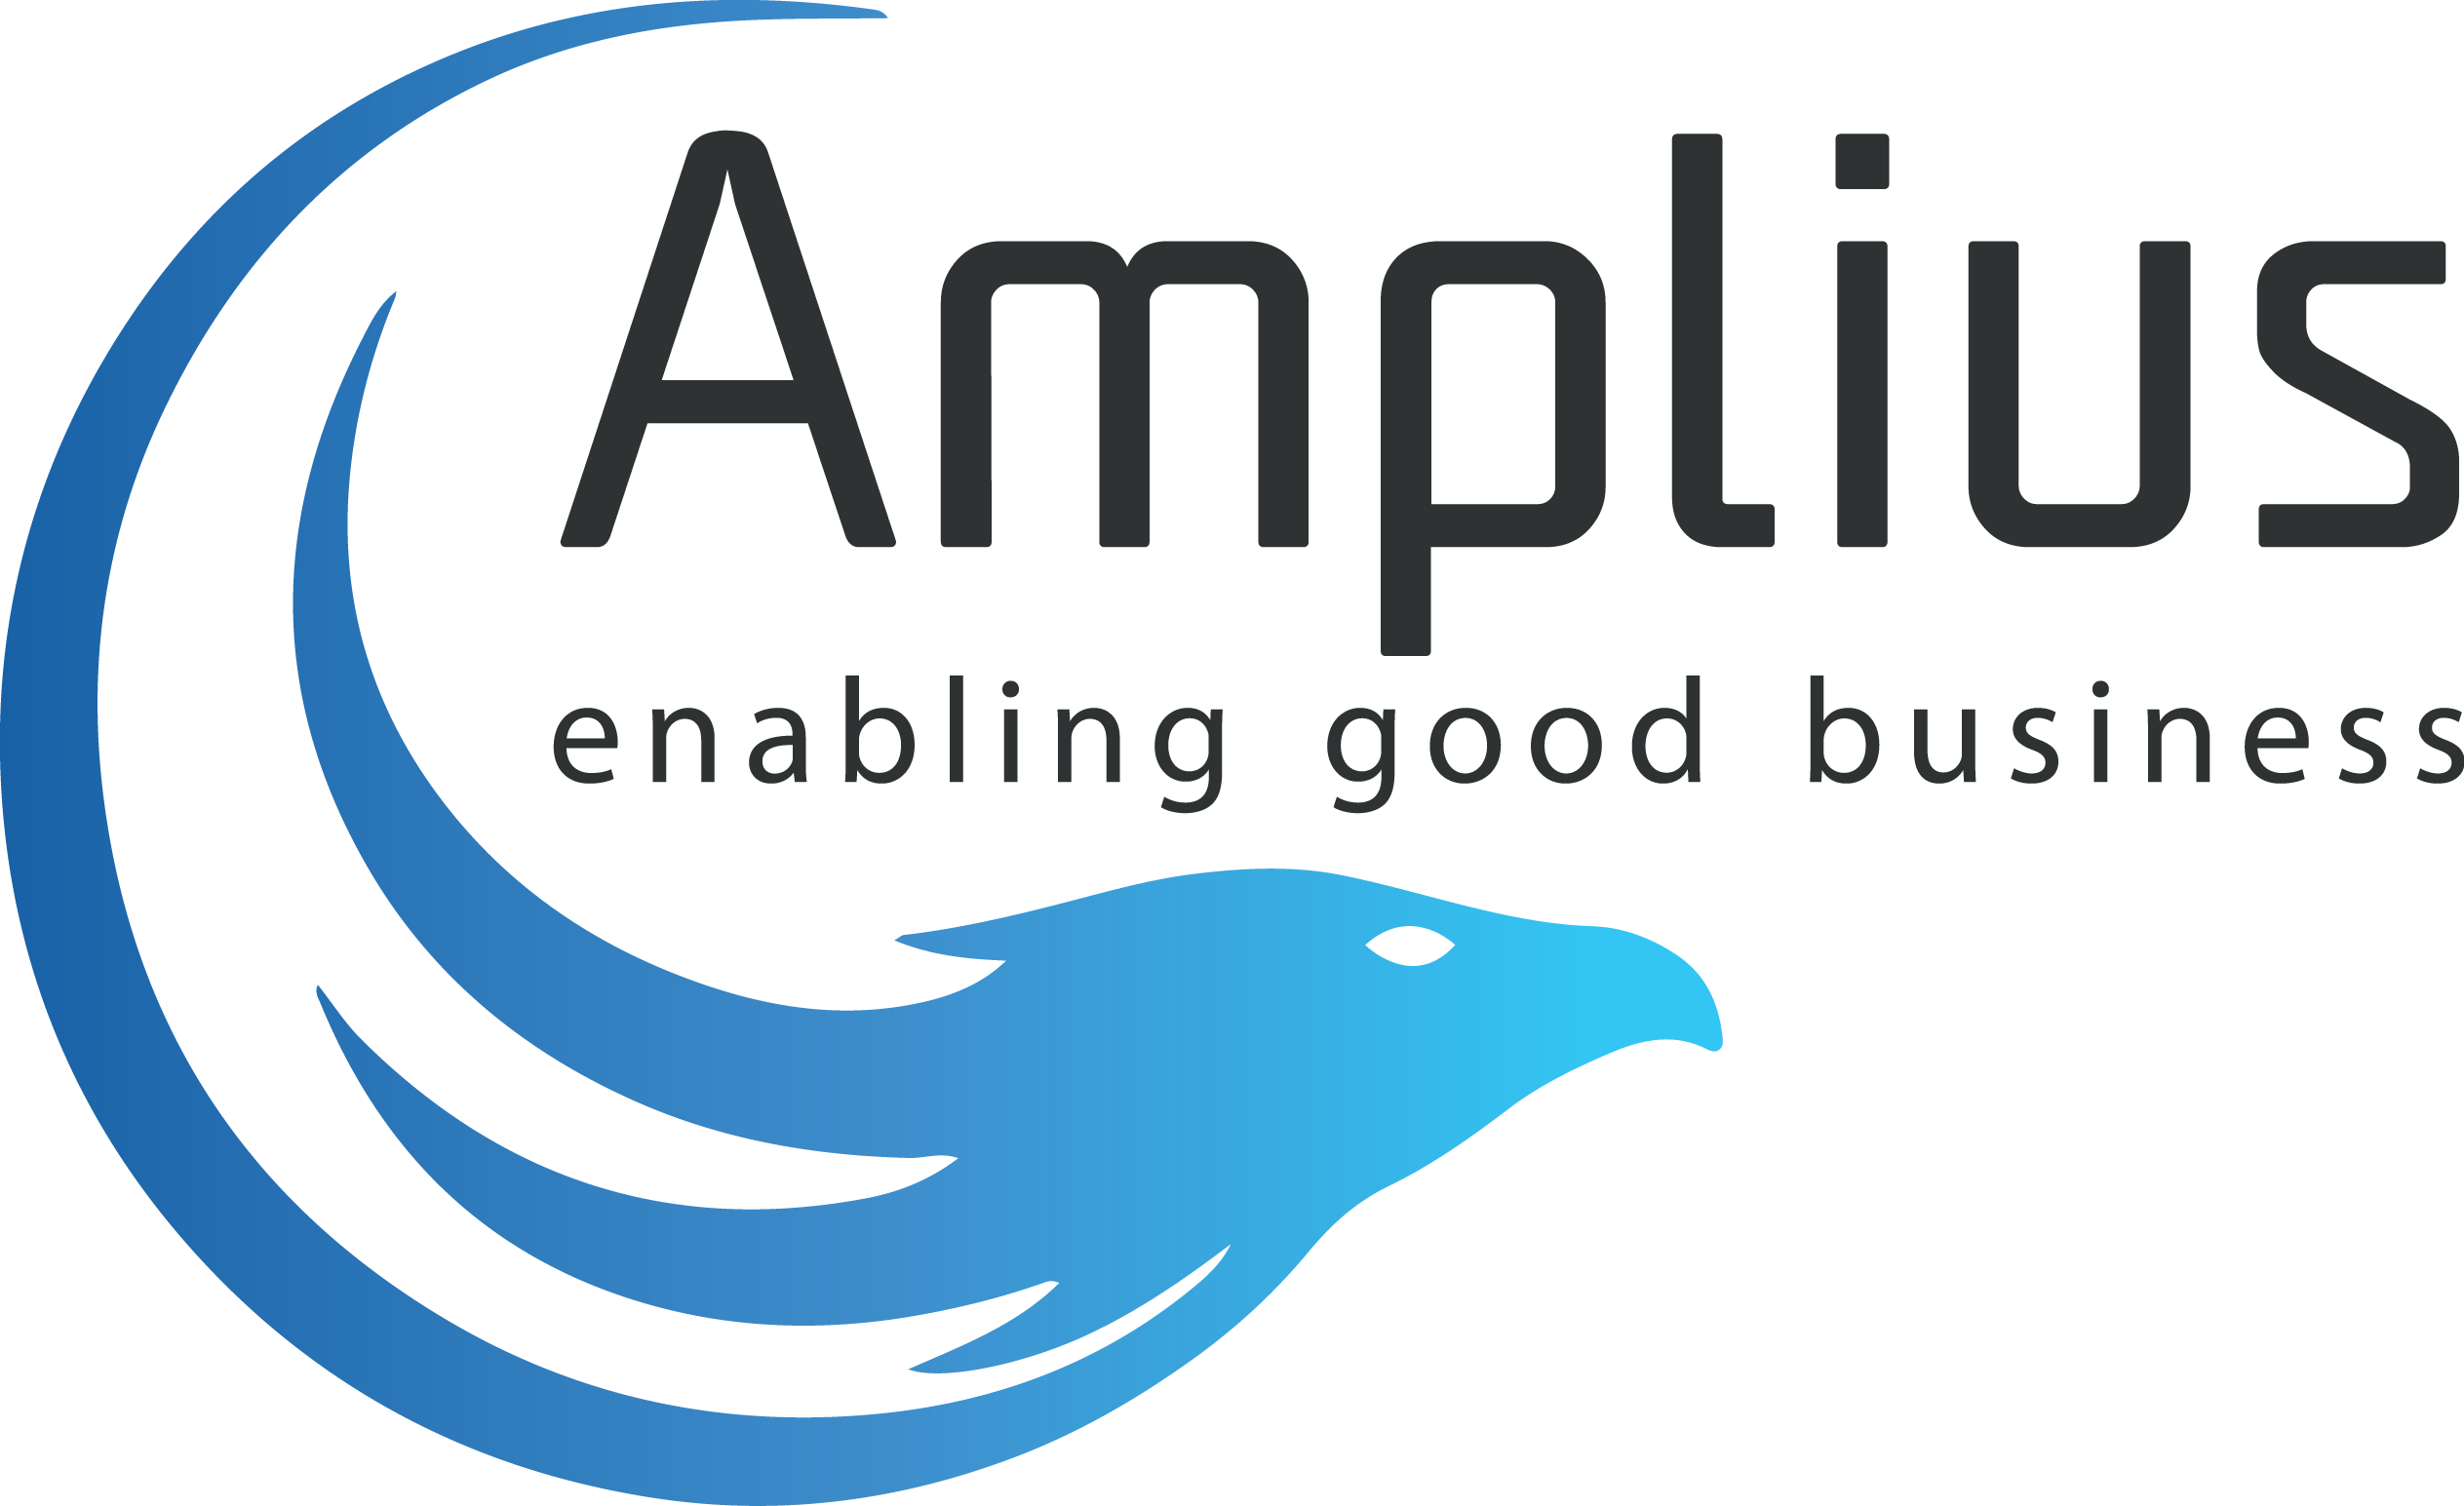 Amplius Field Service Group